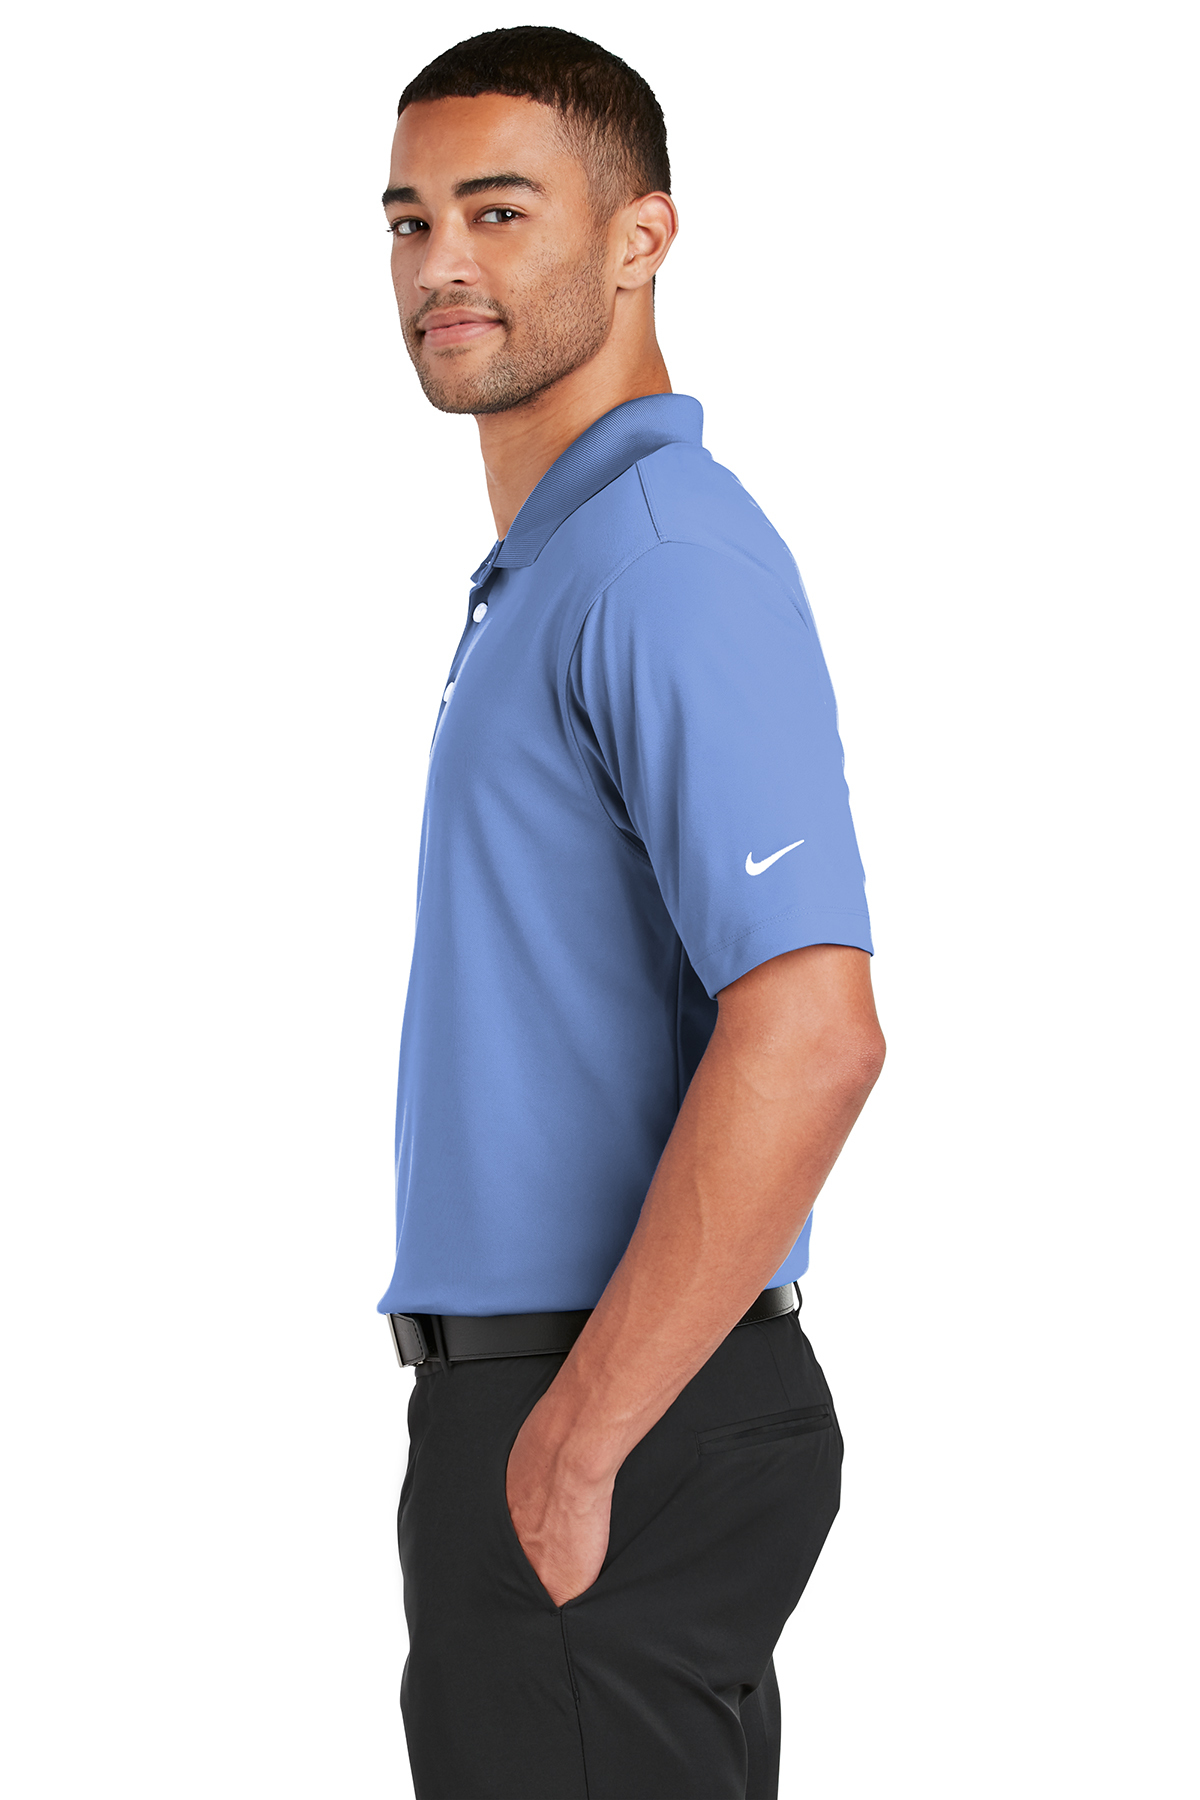 Nike Mens Dri-FIT Short Sleeve Polo Shirt Sky Blue